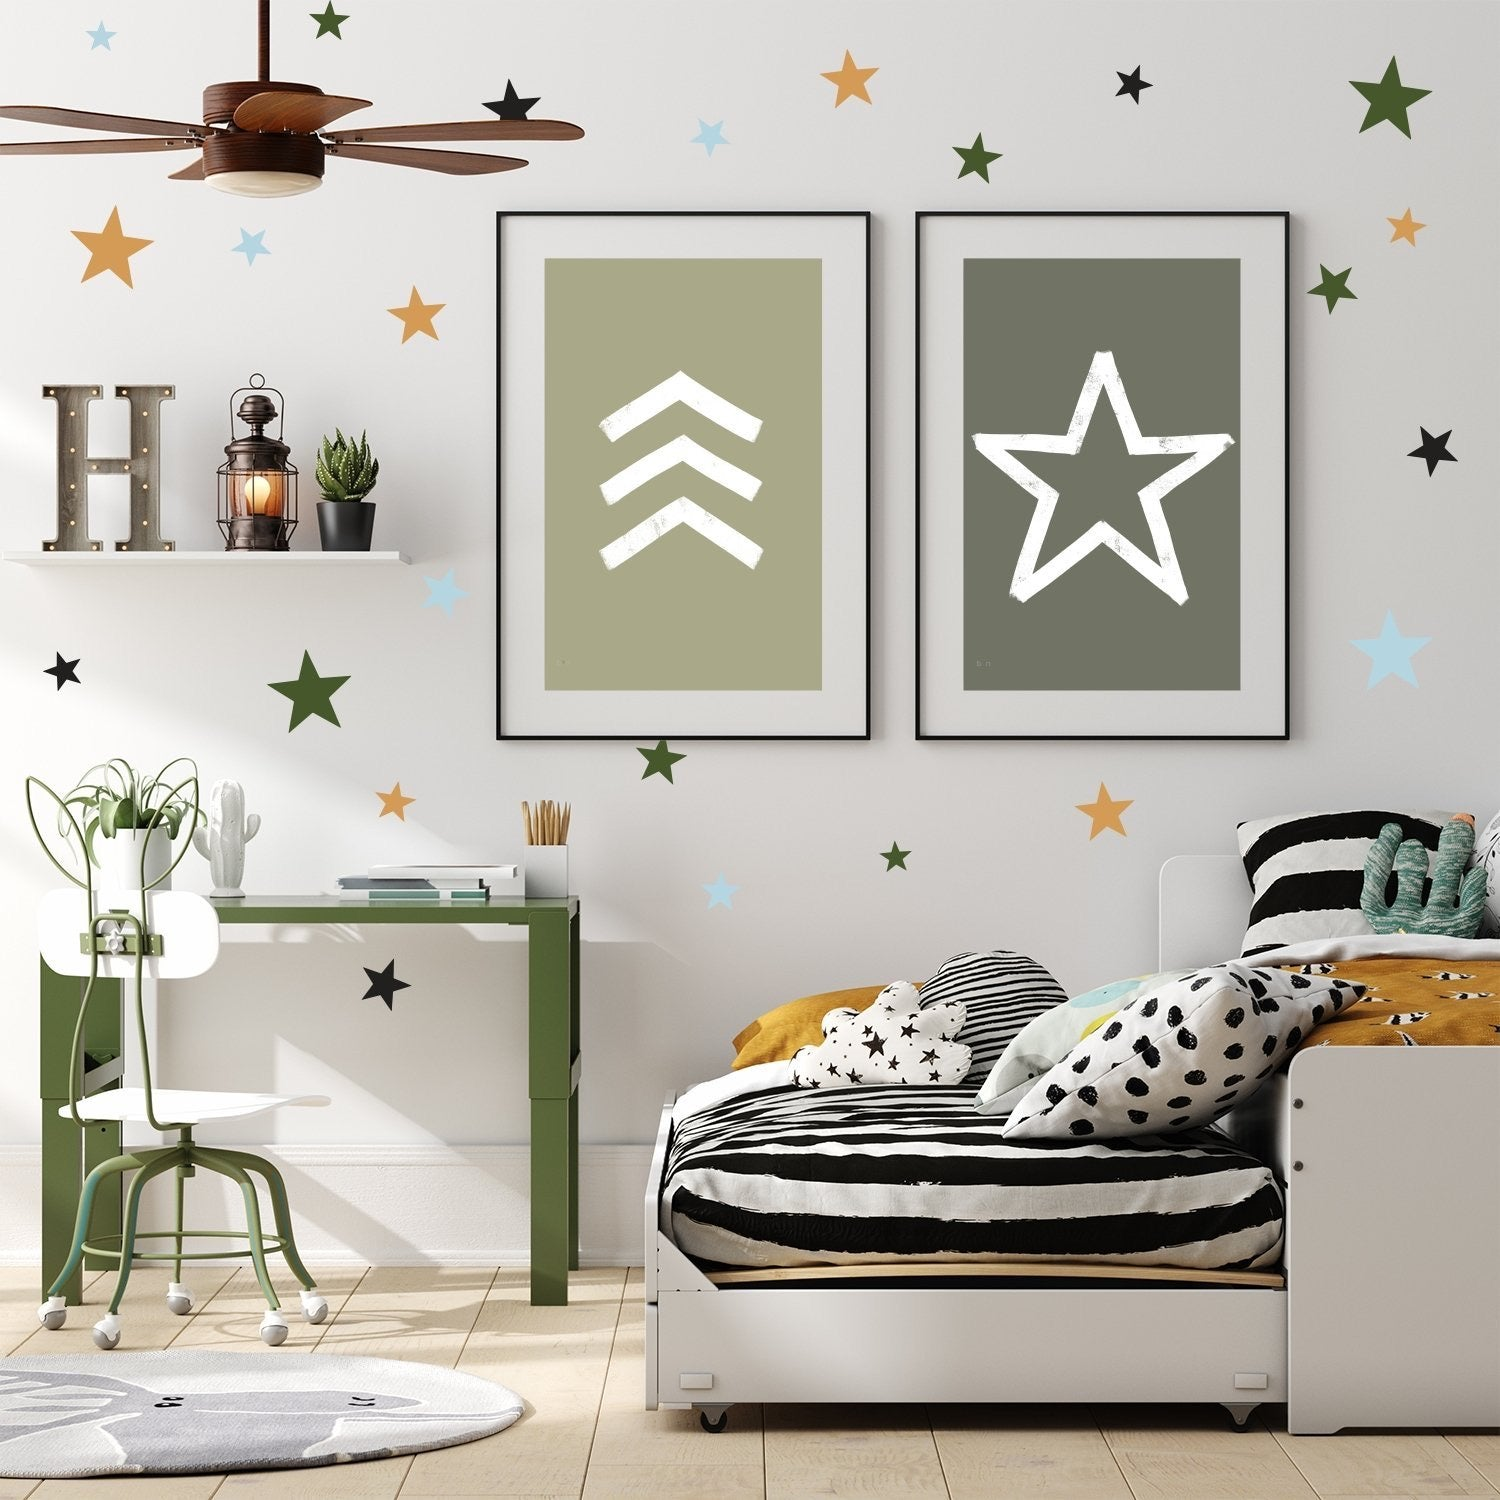 All Star Wall Decals